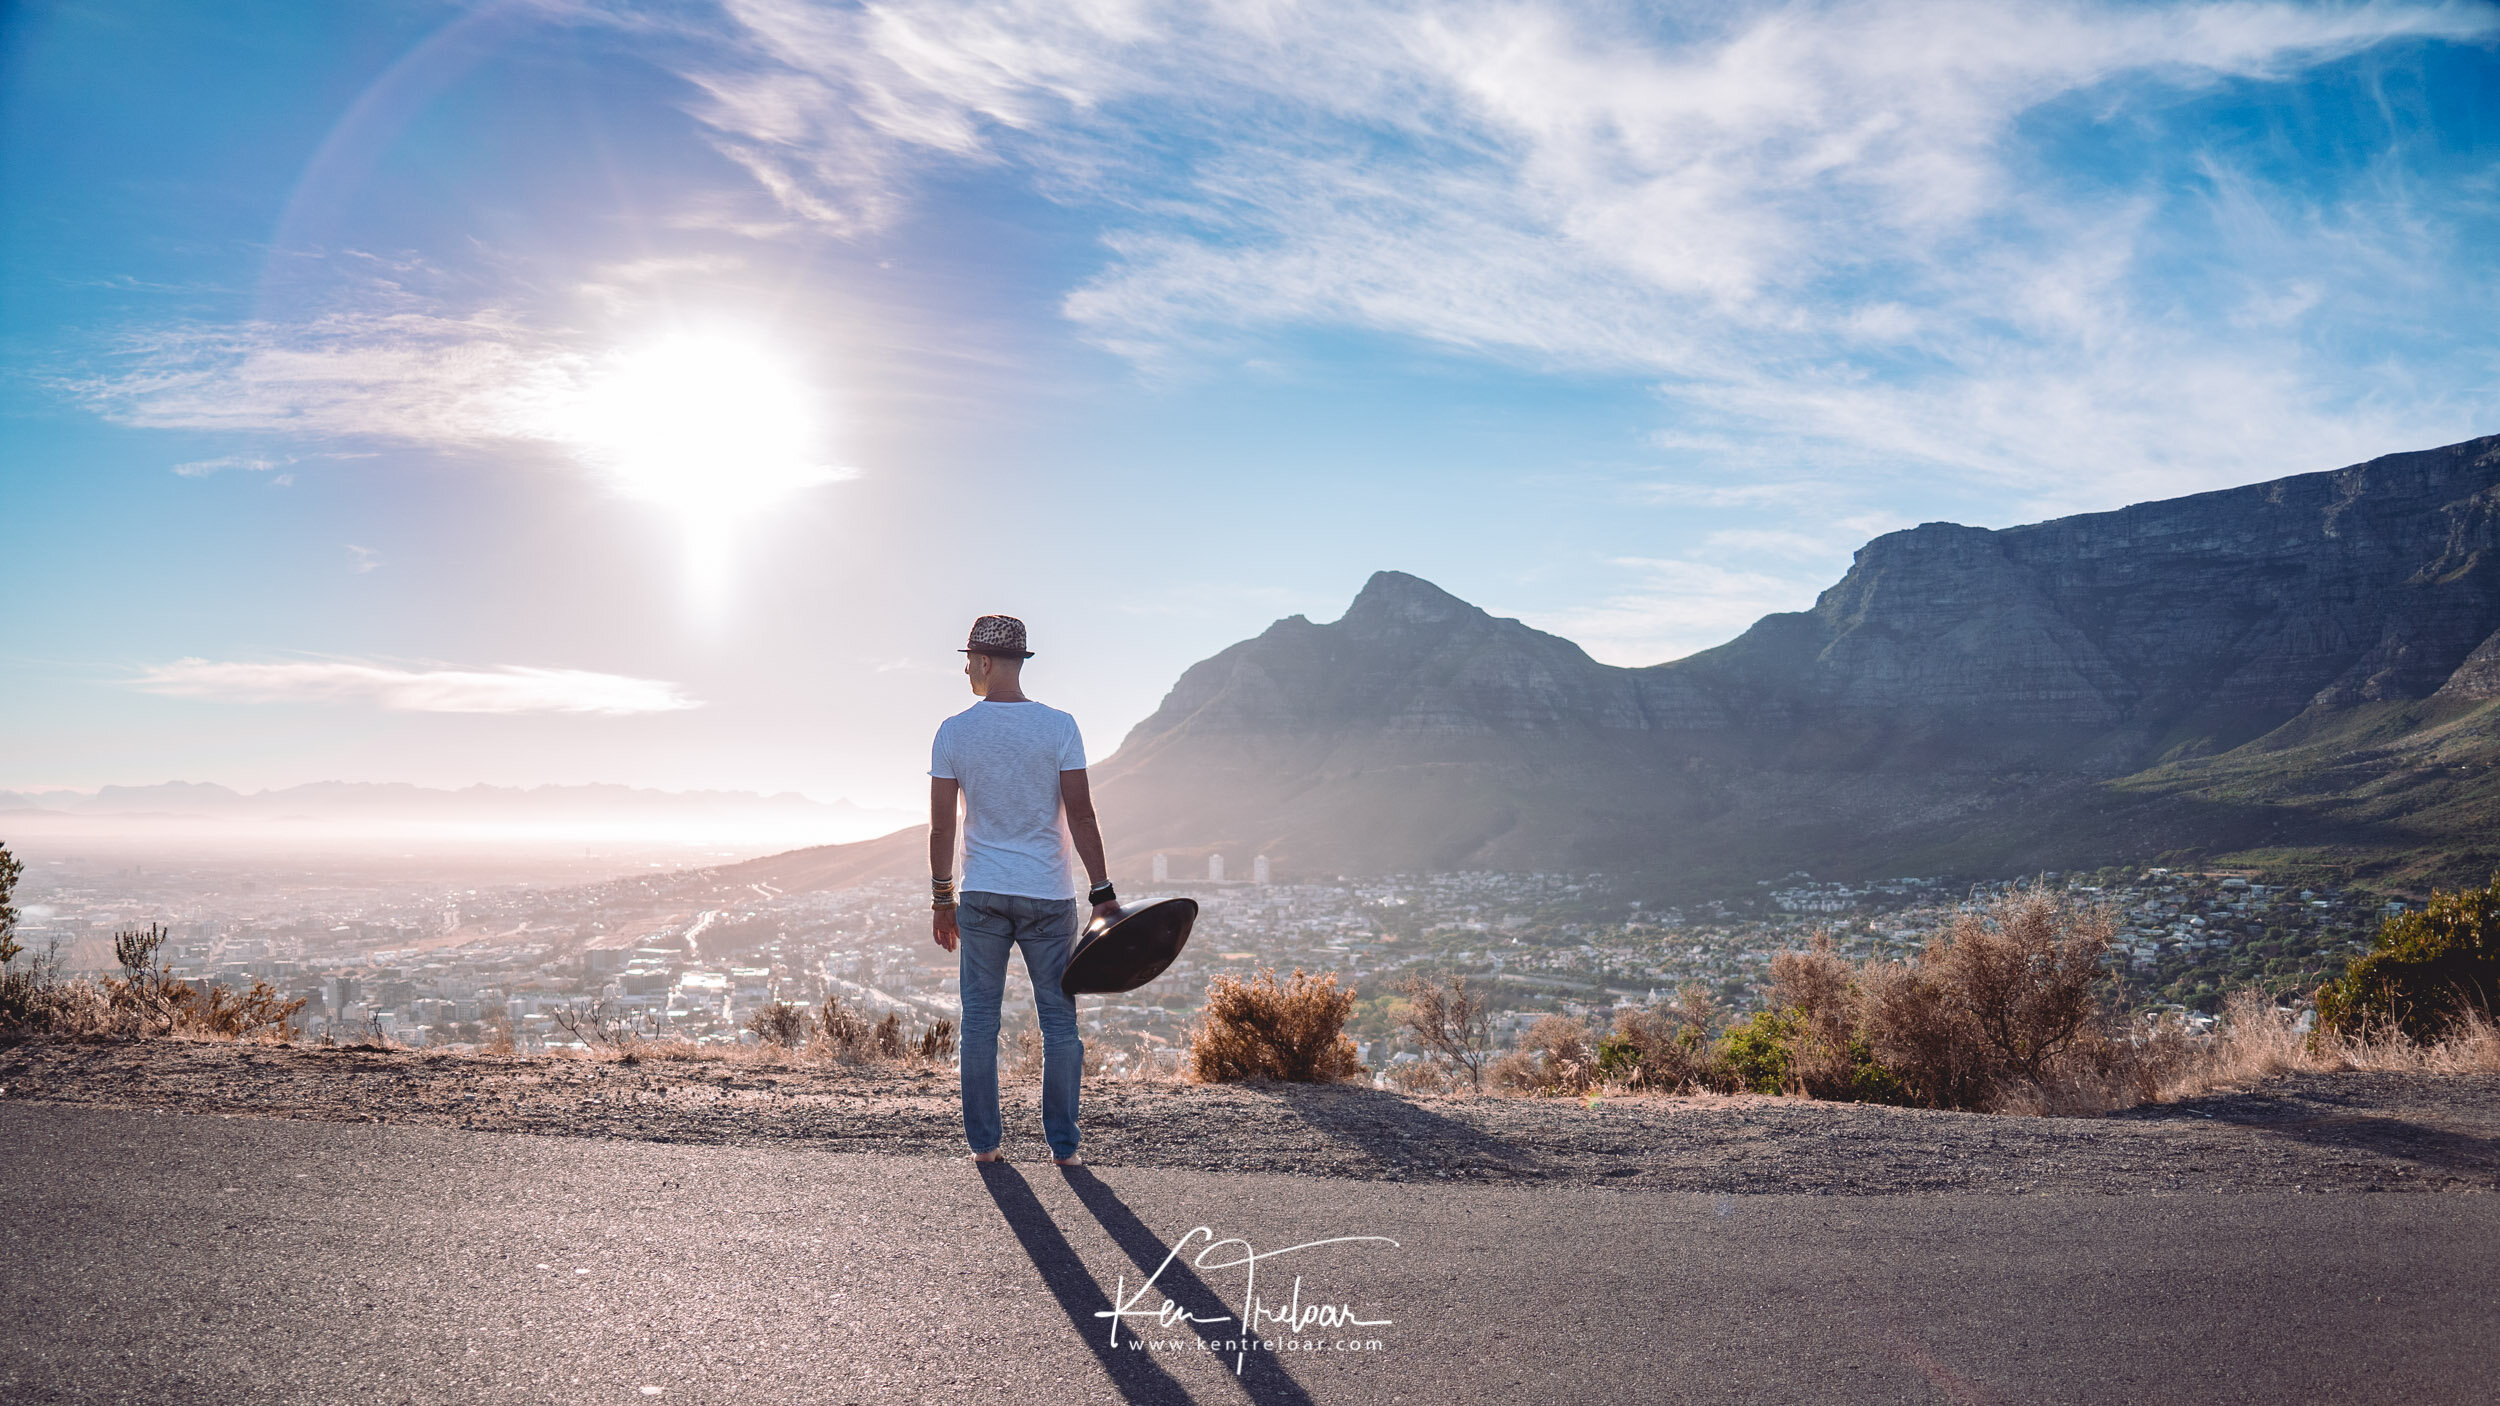 Marco Selvaggio - Signal Hill, Lions head, Table Mountain, Cape Town South Africa - Image by Ken Treloar Photography 2019-4.jpg